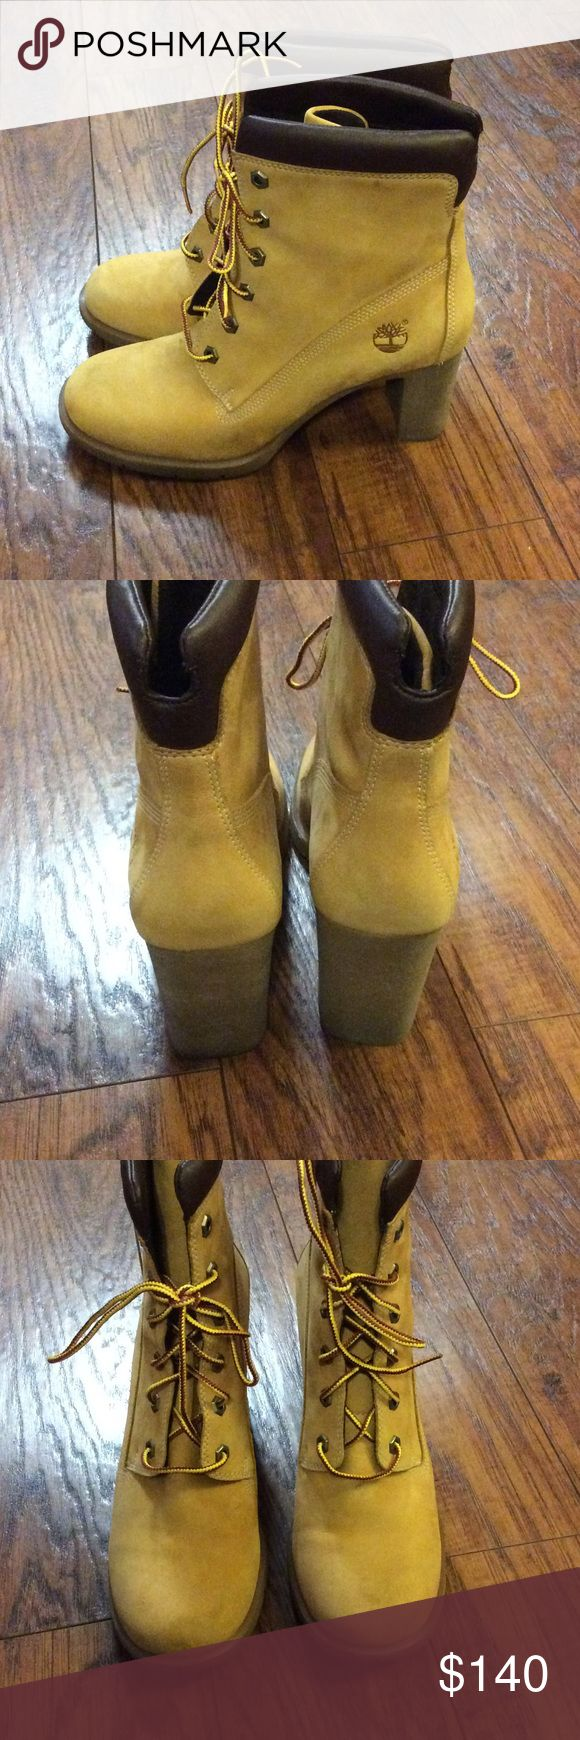 Timberland Heel Boots Super cute Timberland Heel Boots. Boots are in good condition. They have a few minor marks. Timberland Shoes